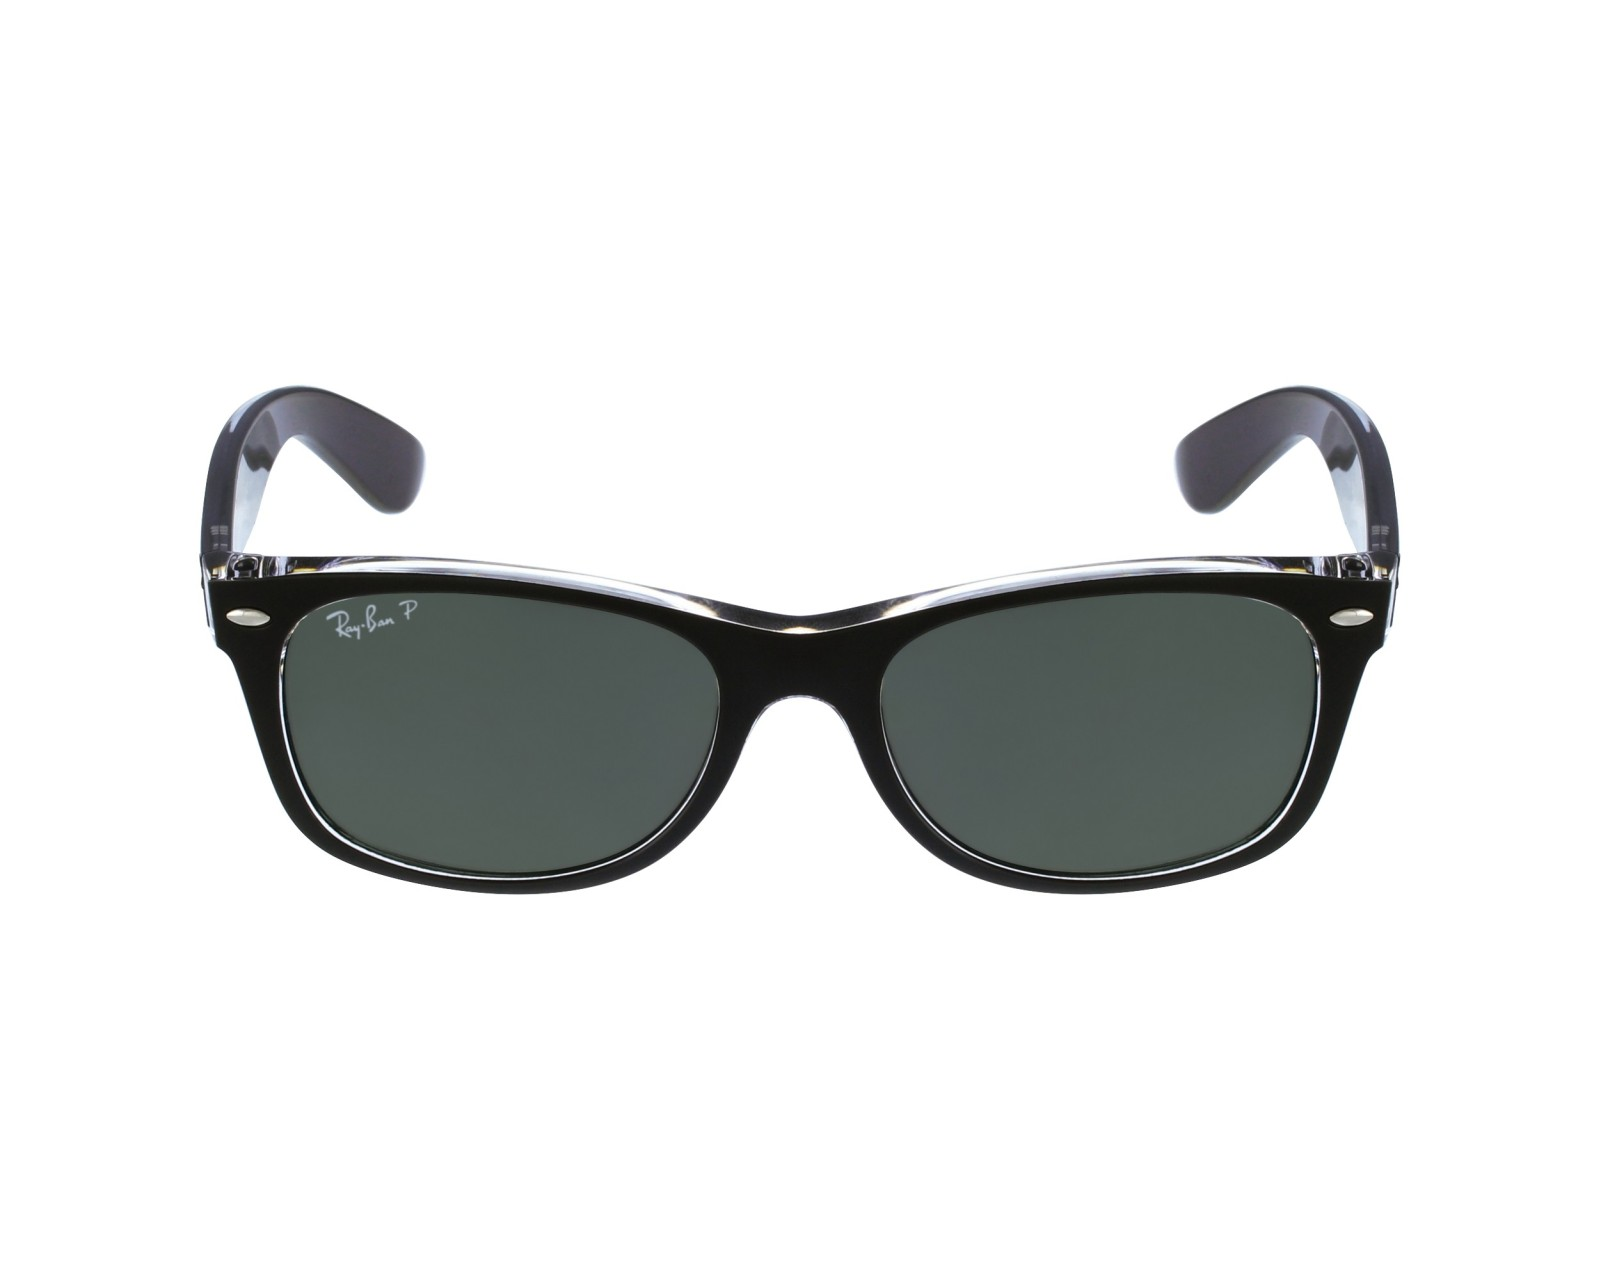 48aa5fe515 Sunglasses Ray-Ban RB-2132 605258 52-18 Black profile view